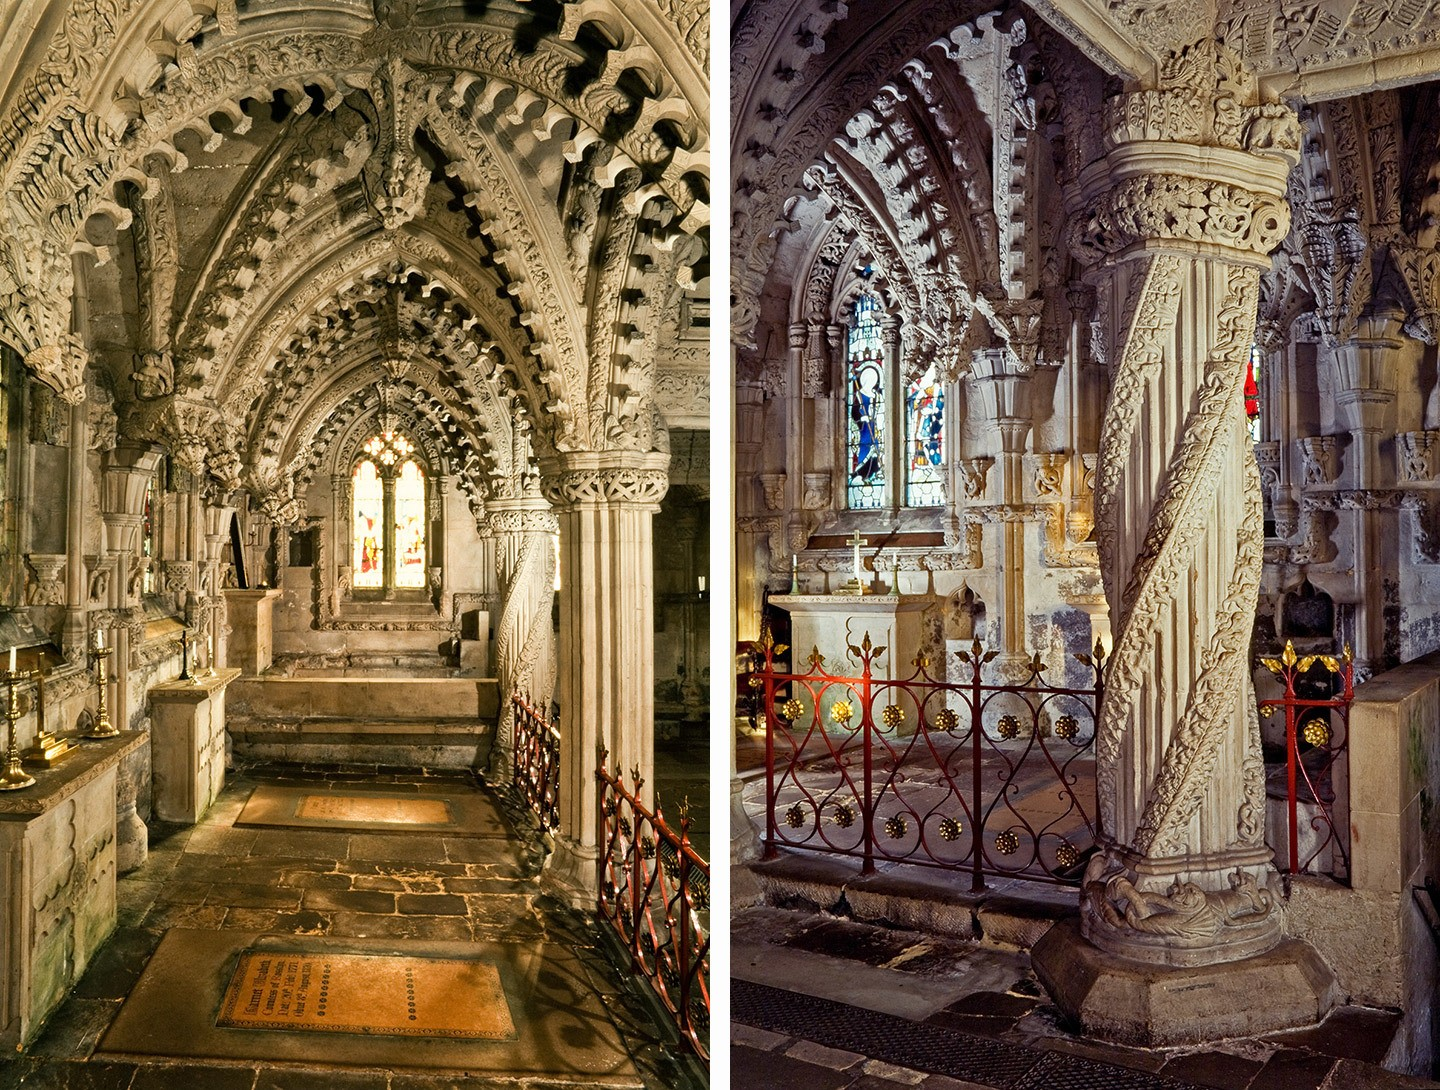 Rosslyn Chapel interior